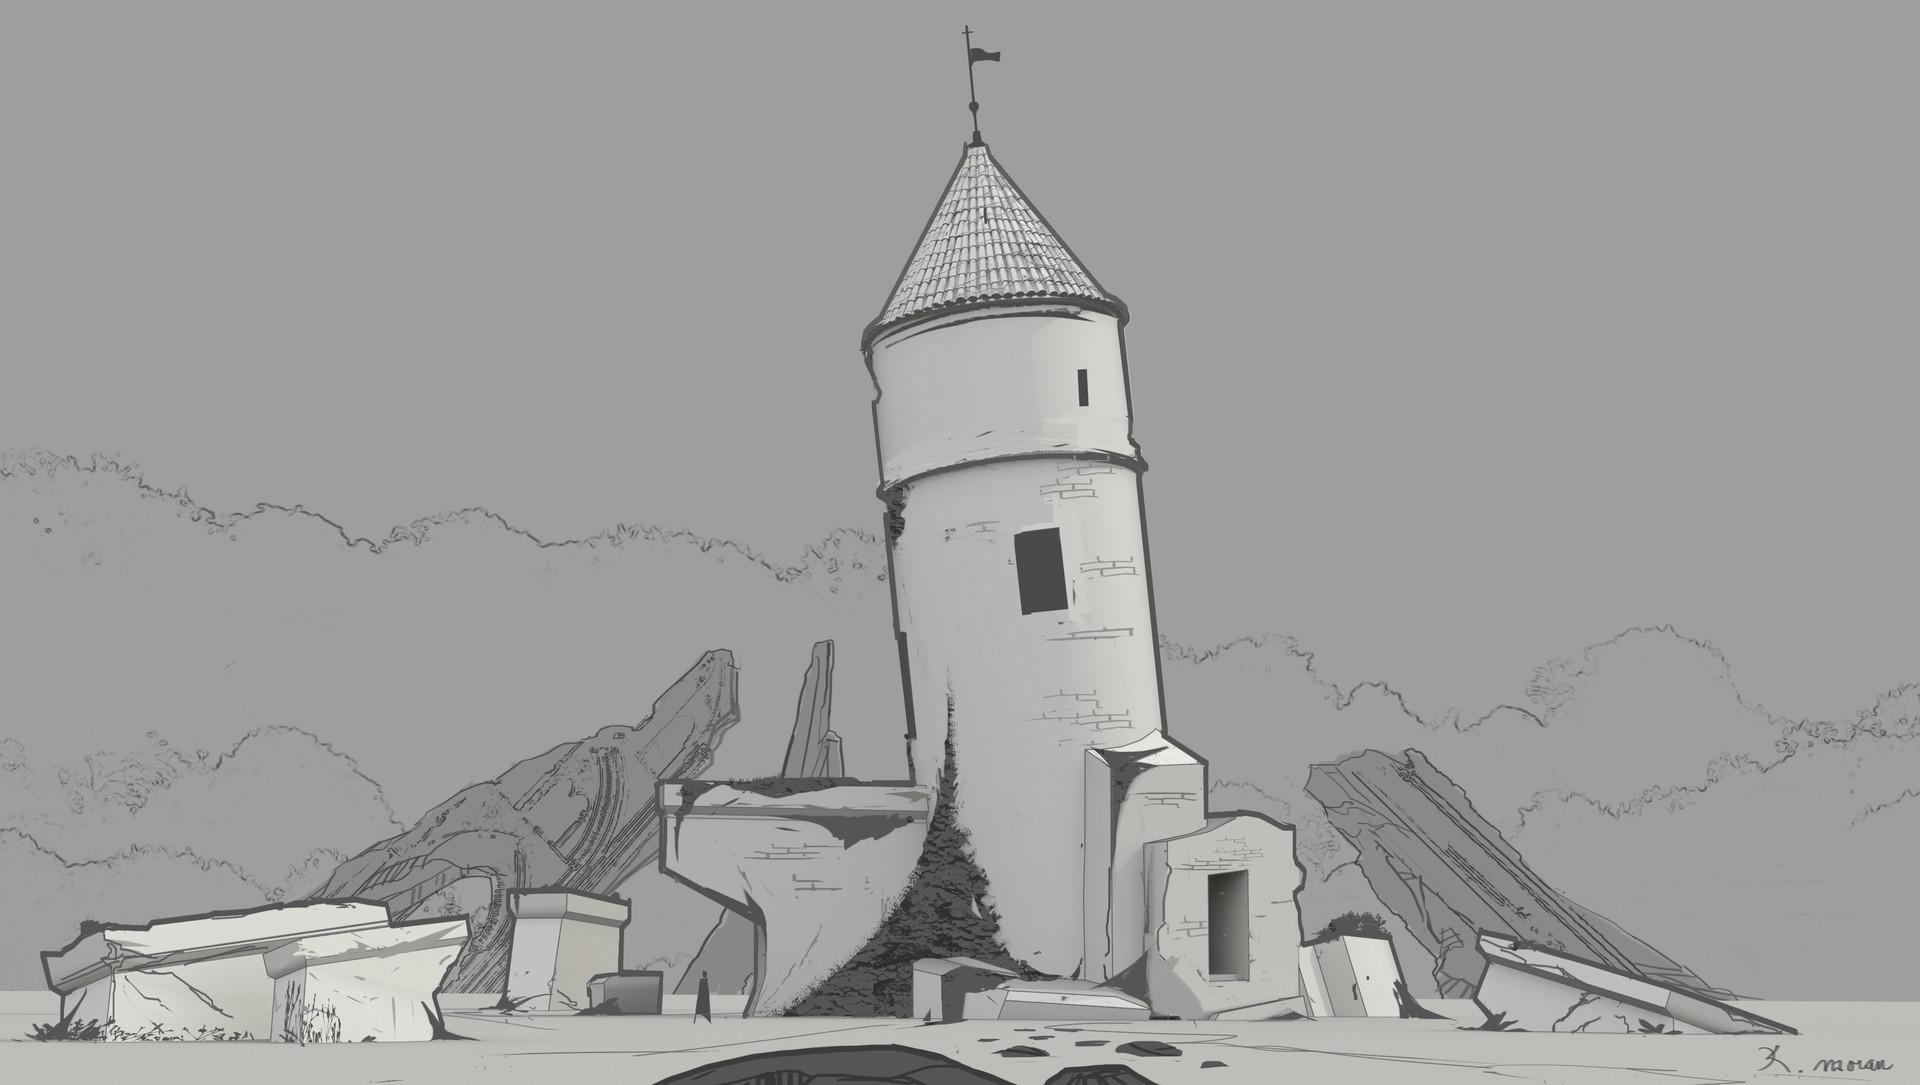 Crumbled tower